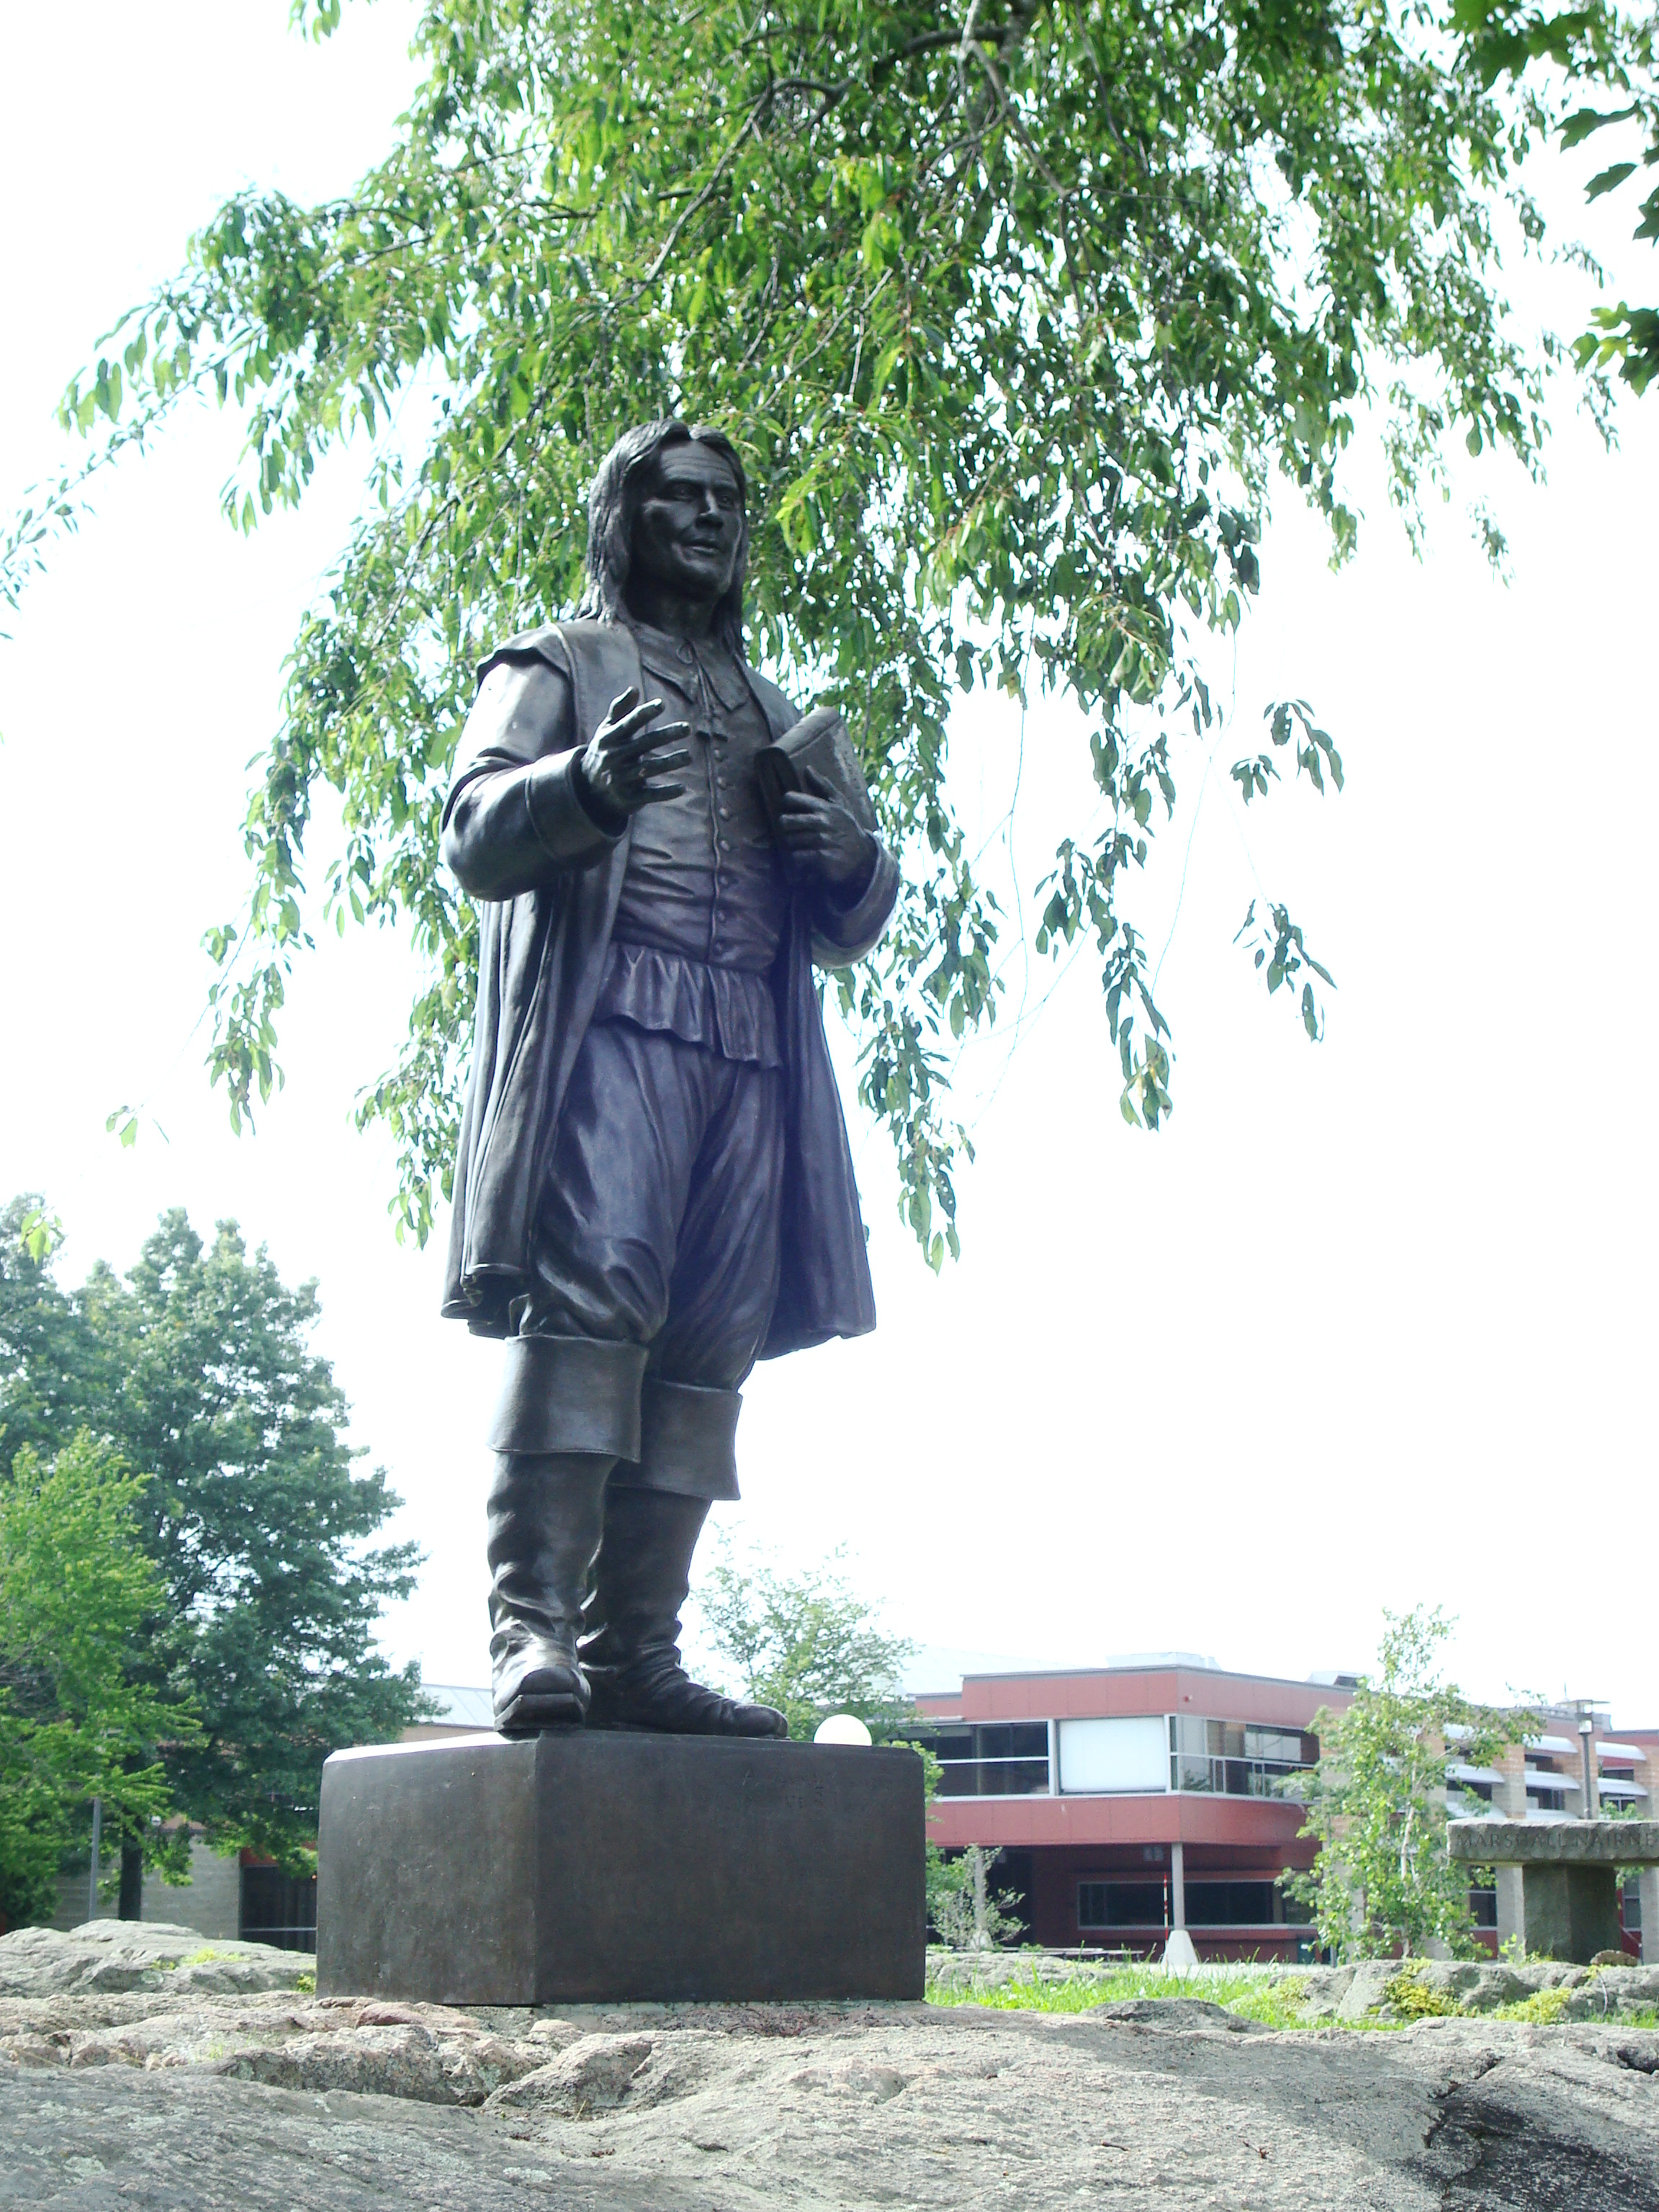 Roger Williams, founder of the Colony of Rhode Island and Providence Plantations, at Roger Williams University